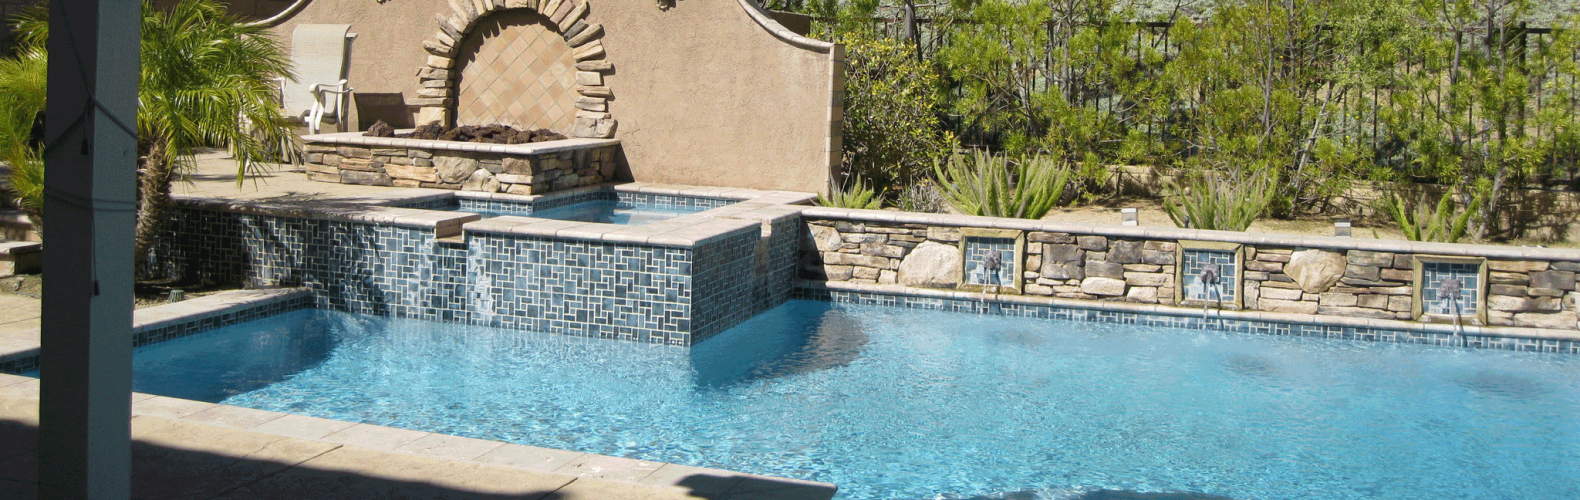 pool repair and pool service for all your swimming pool needs